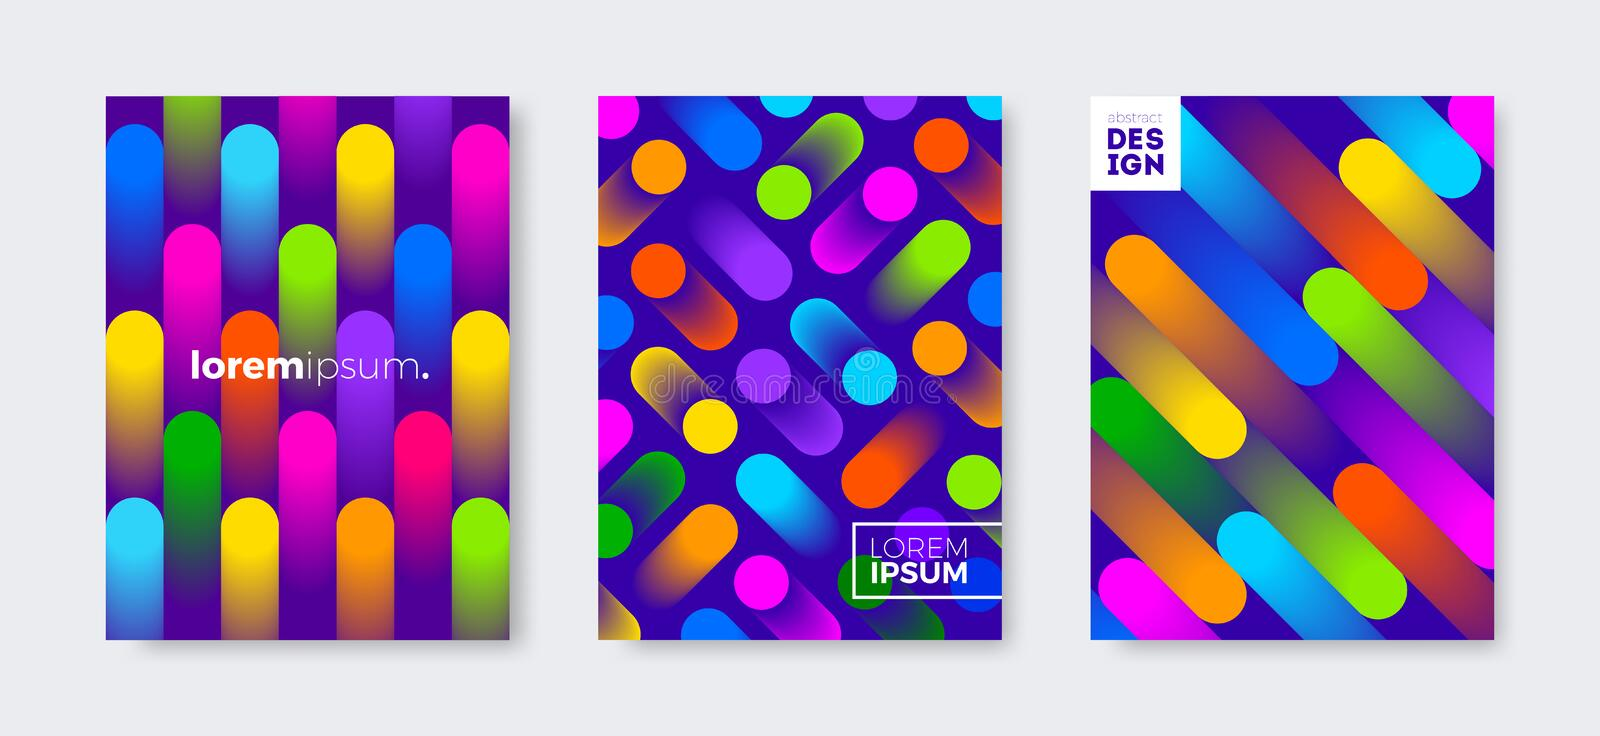 Set of cover design with abstract multicolored gradient shapes. Vector illustration template. Universal abstract design. stock illustration